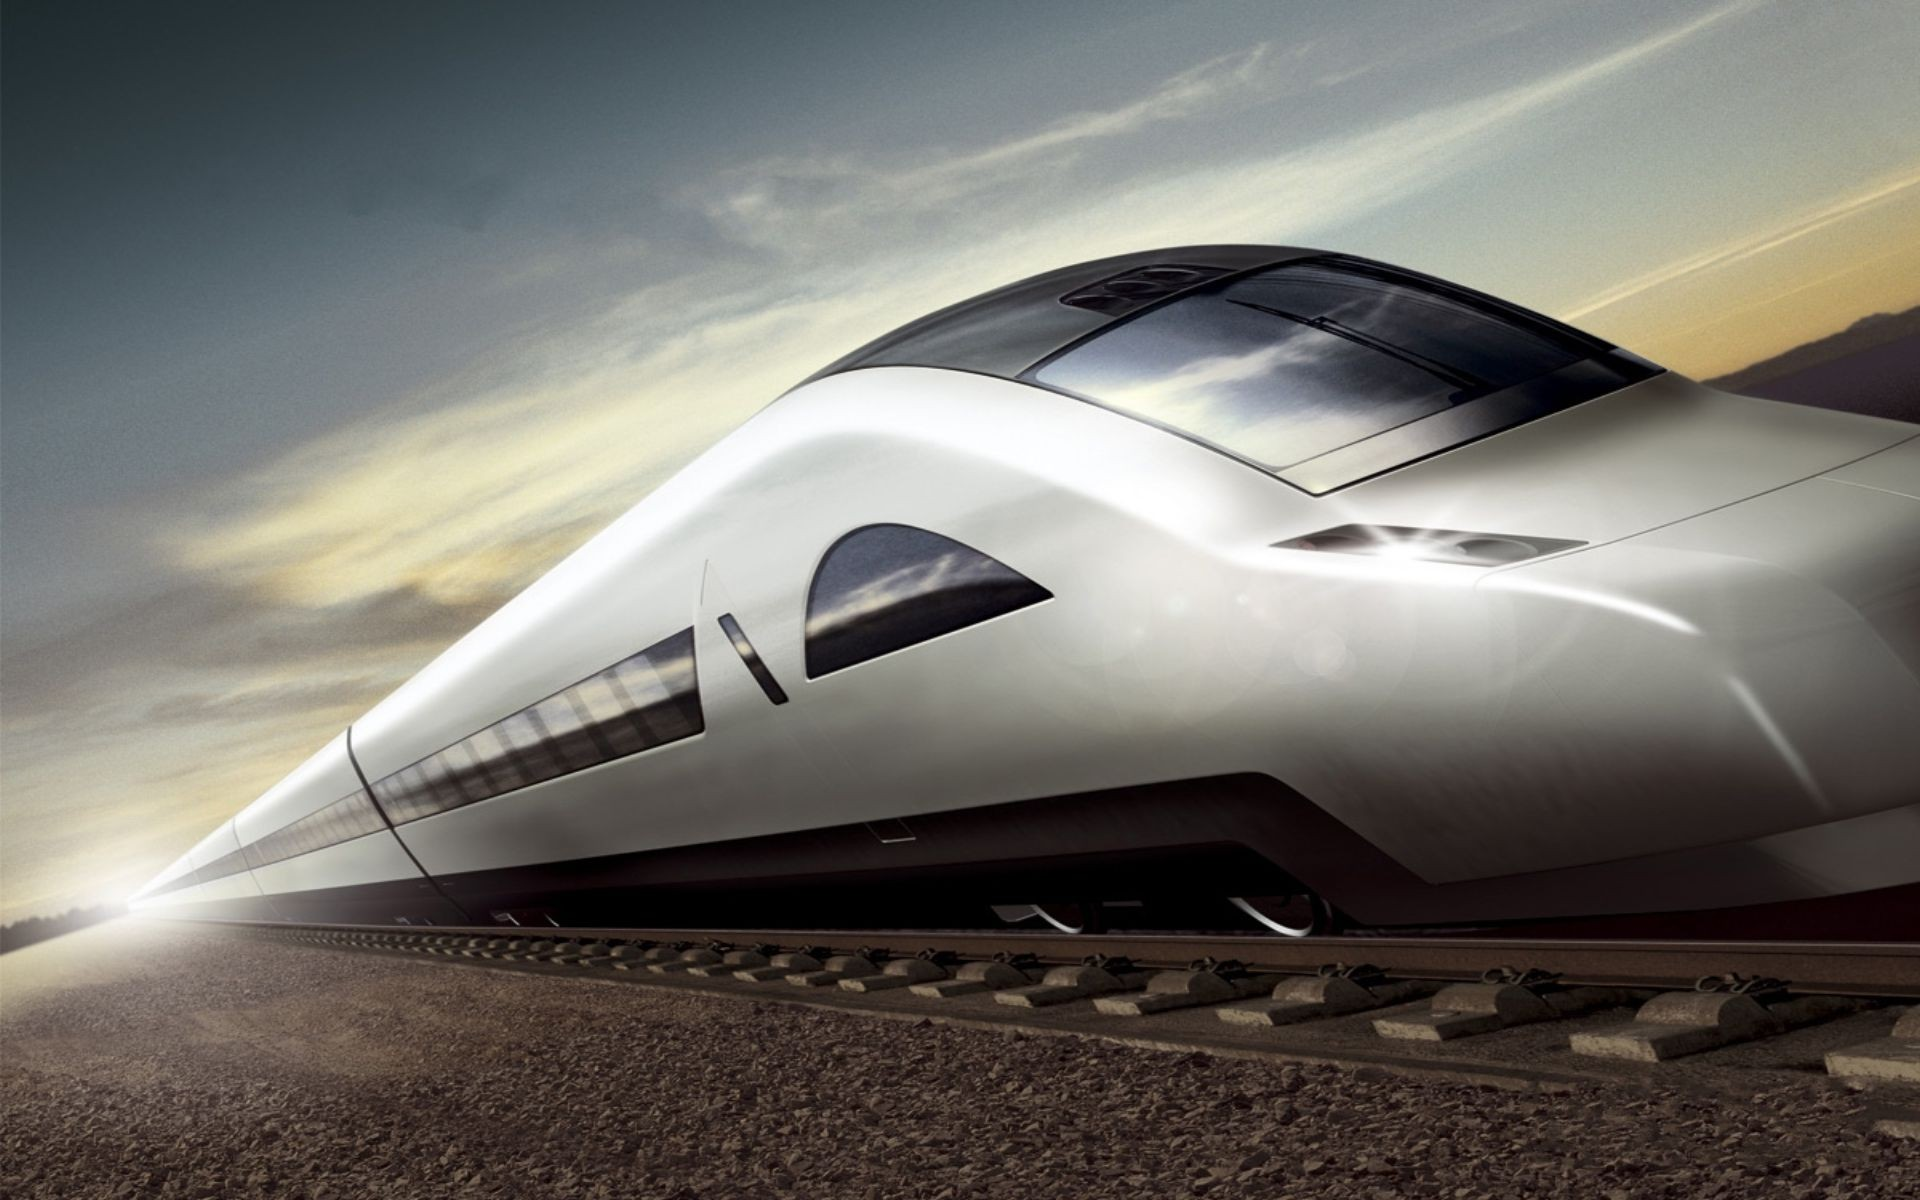 Bullet Train Artwork wallpapers Bullet Train Artwork 1920x1200